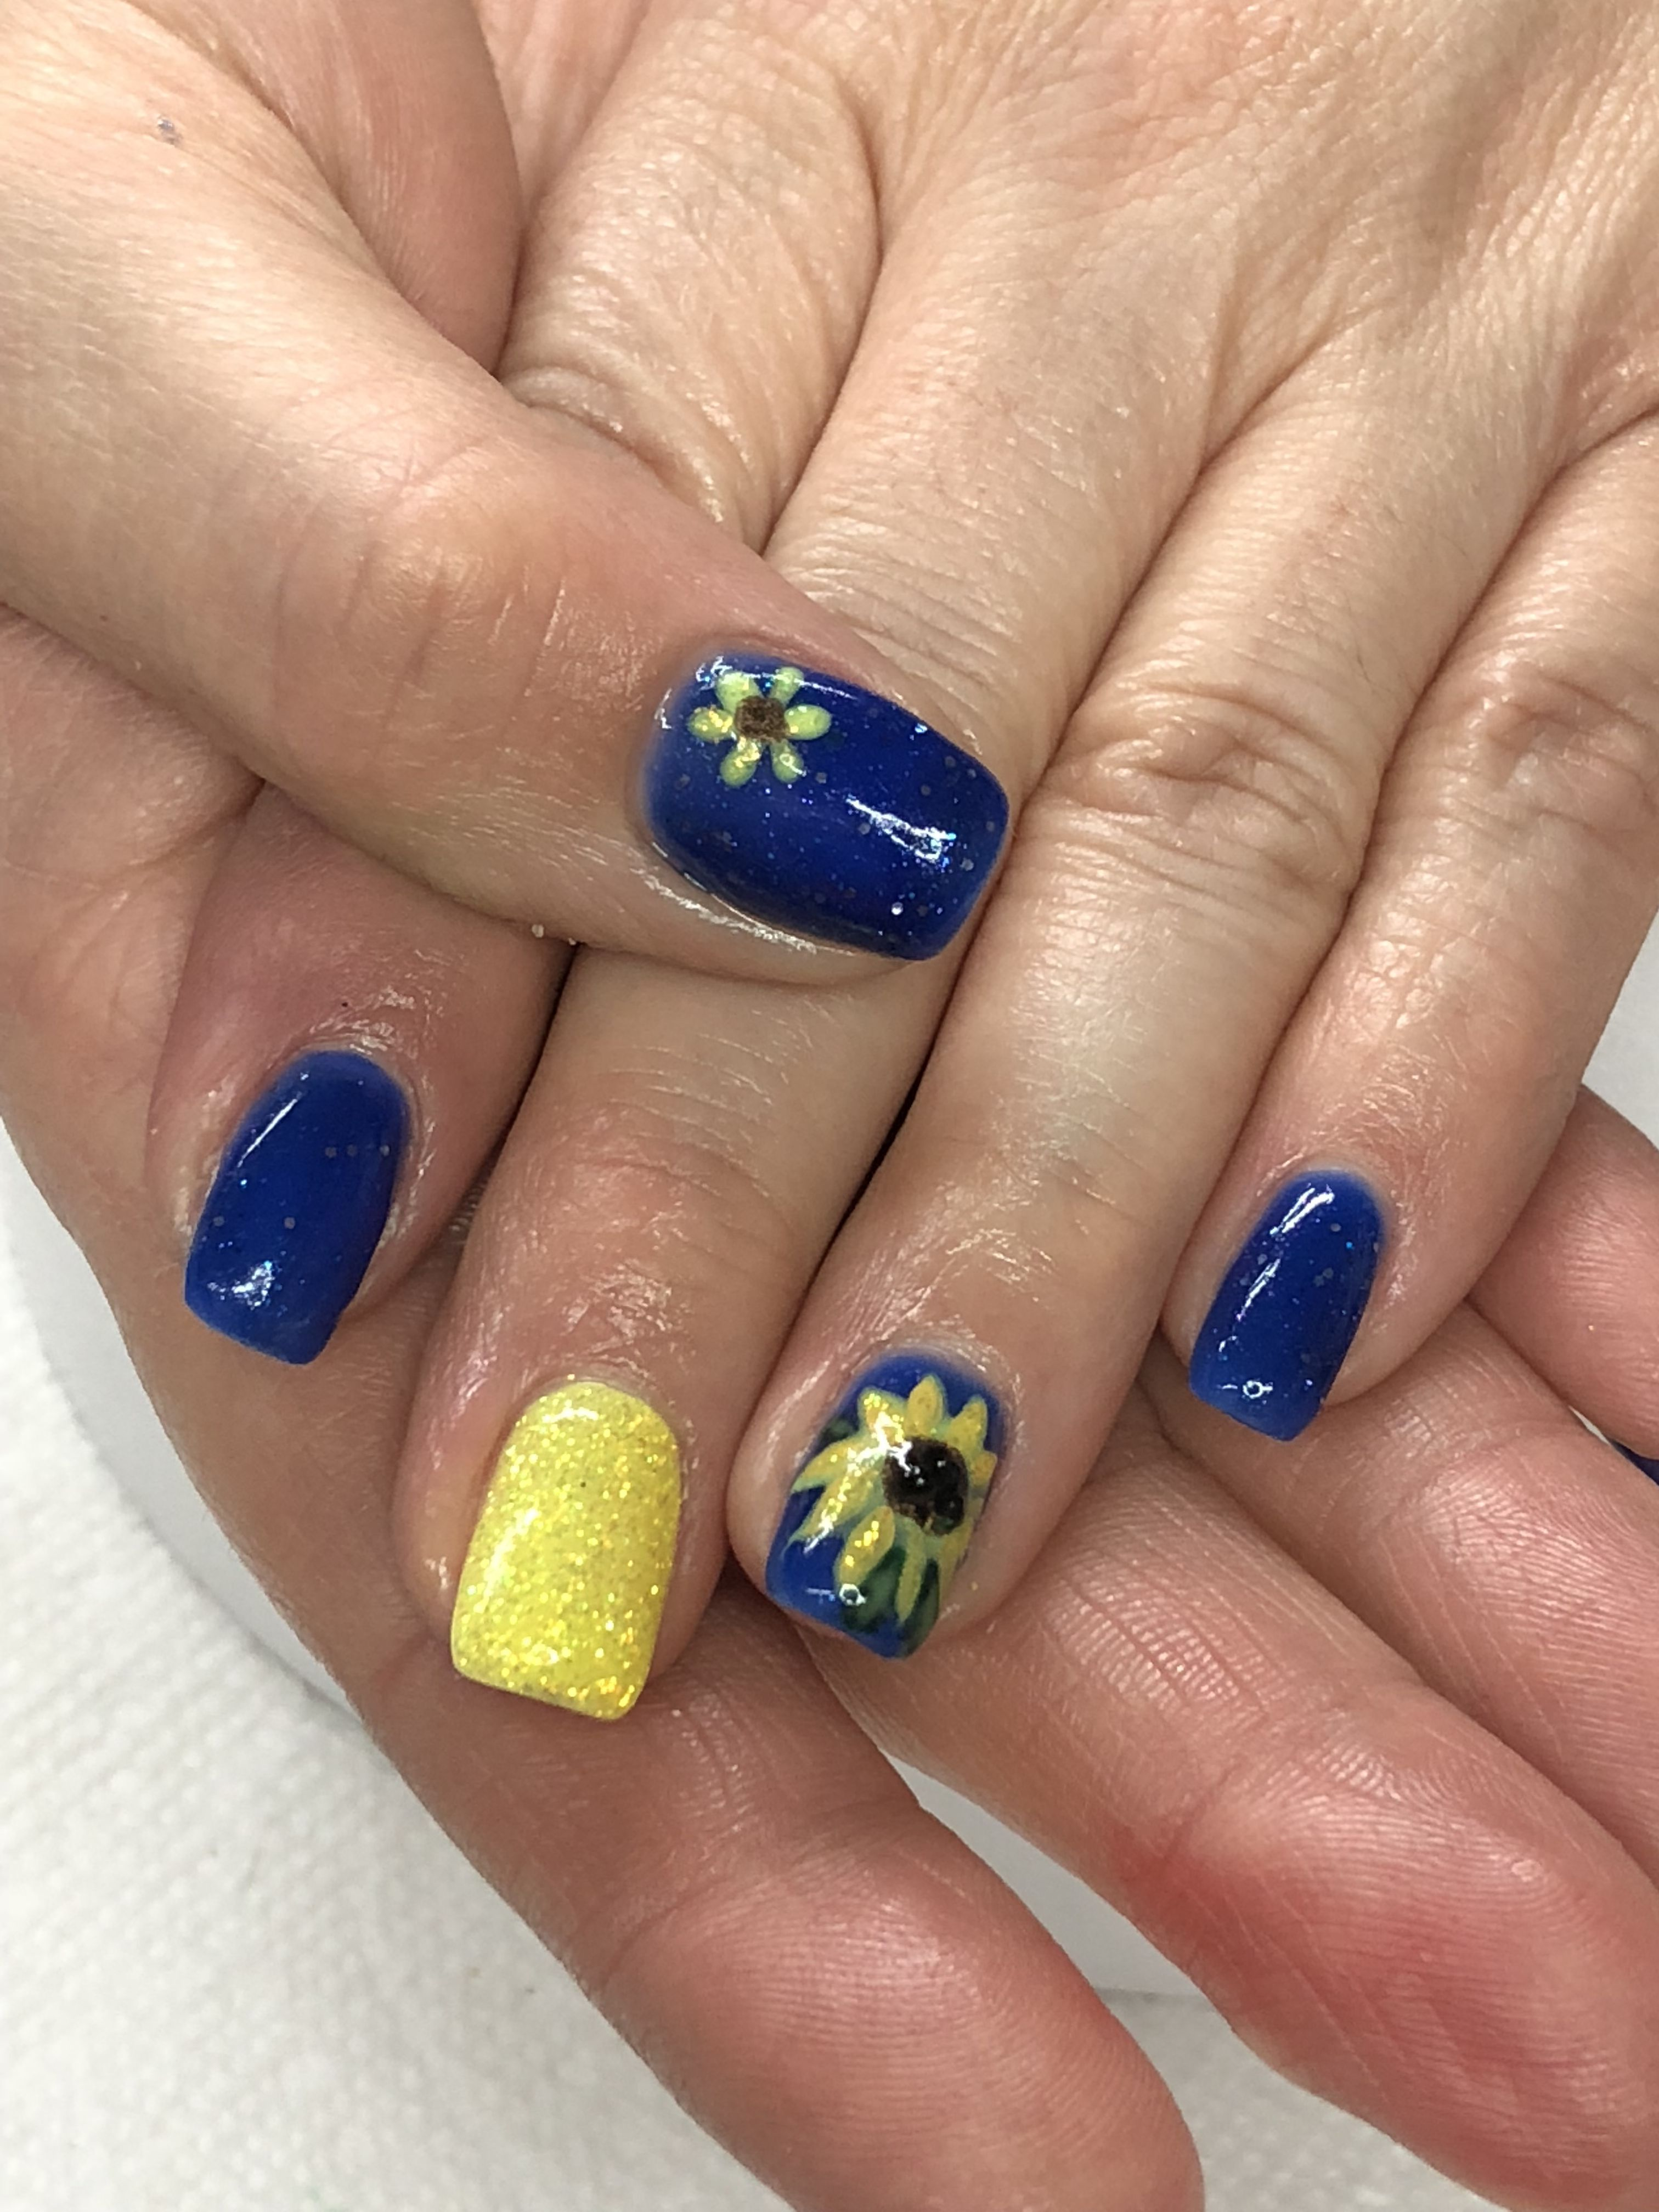 22 Beautiful Gel Nails Turning Yellow - Sunflower Royal ...